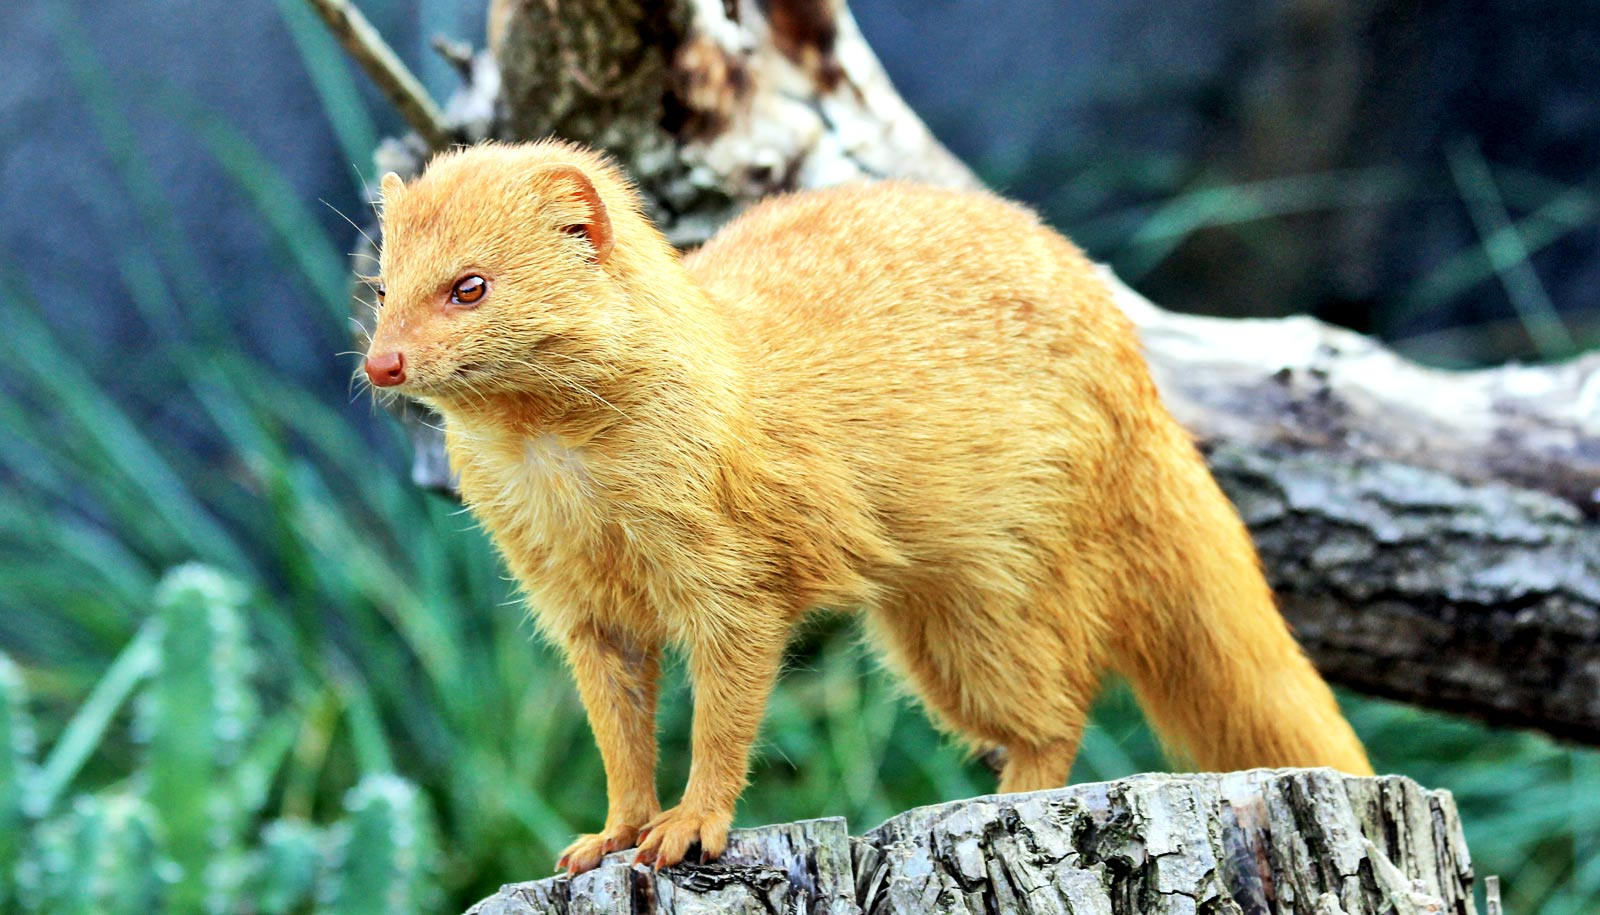 slender mongoose stands on stump